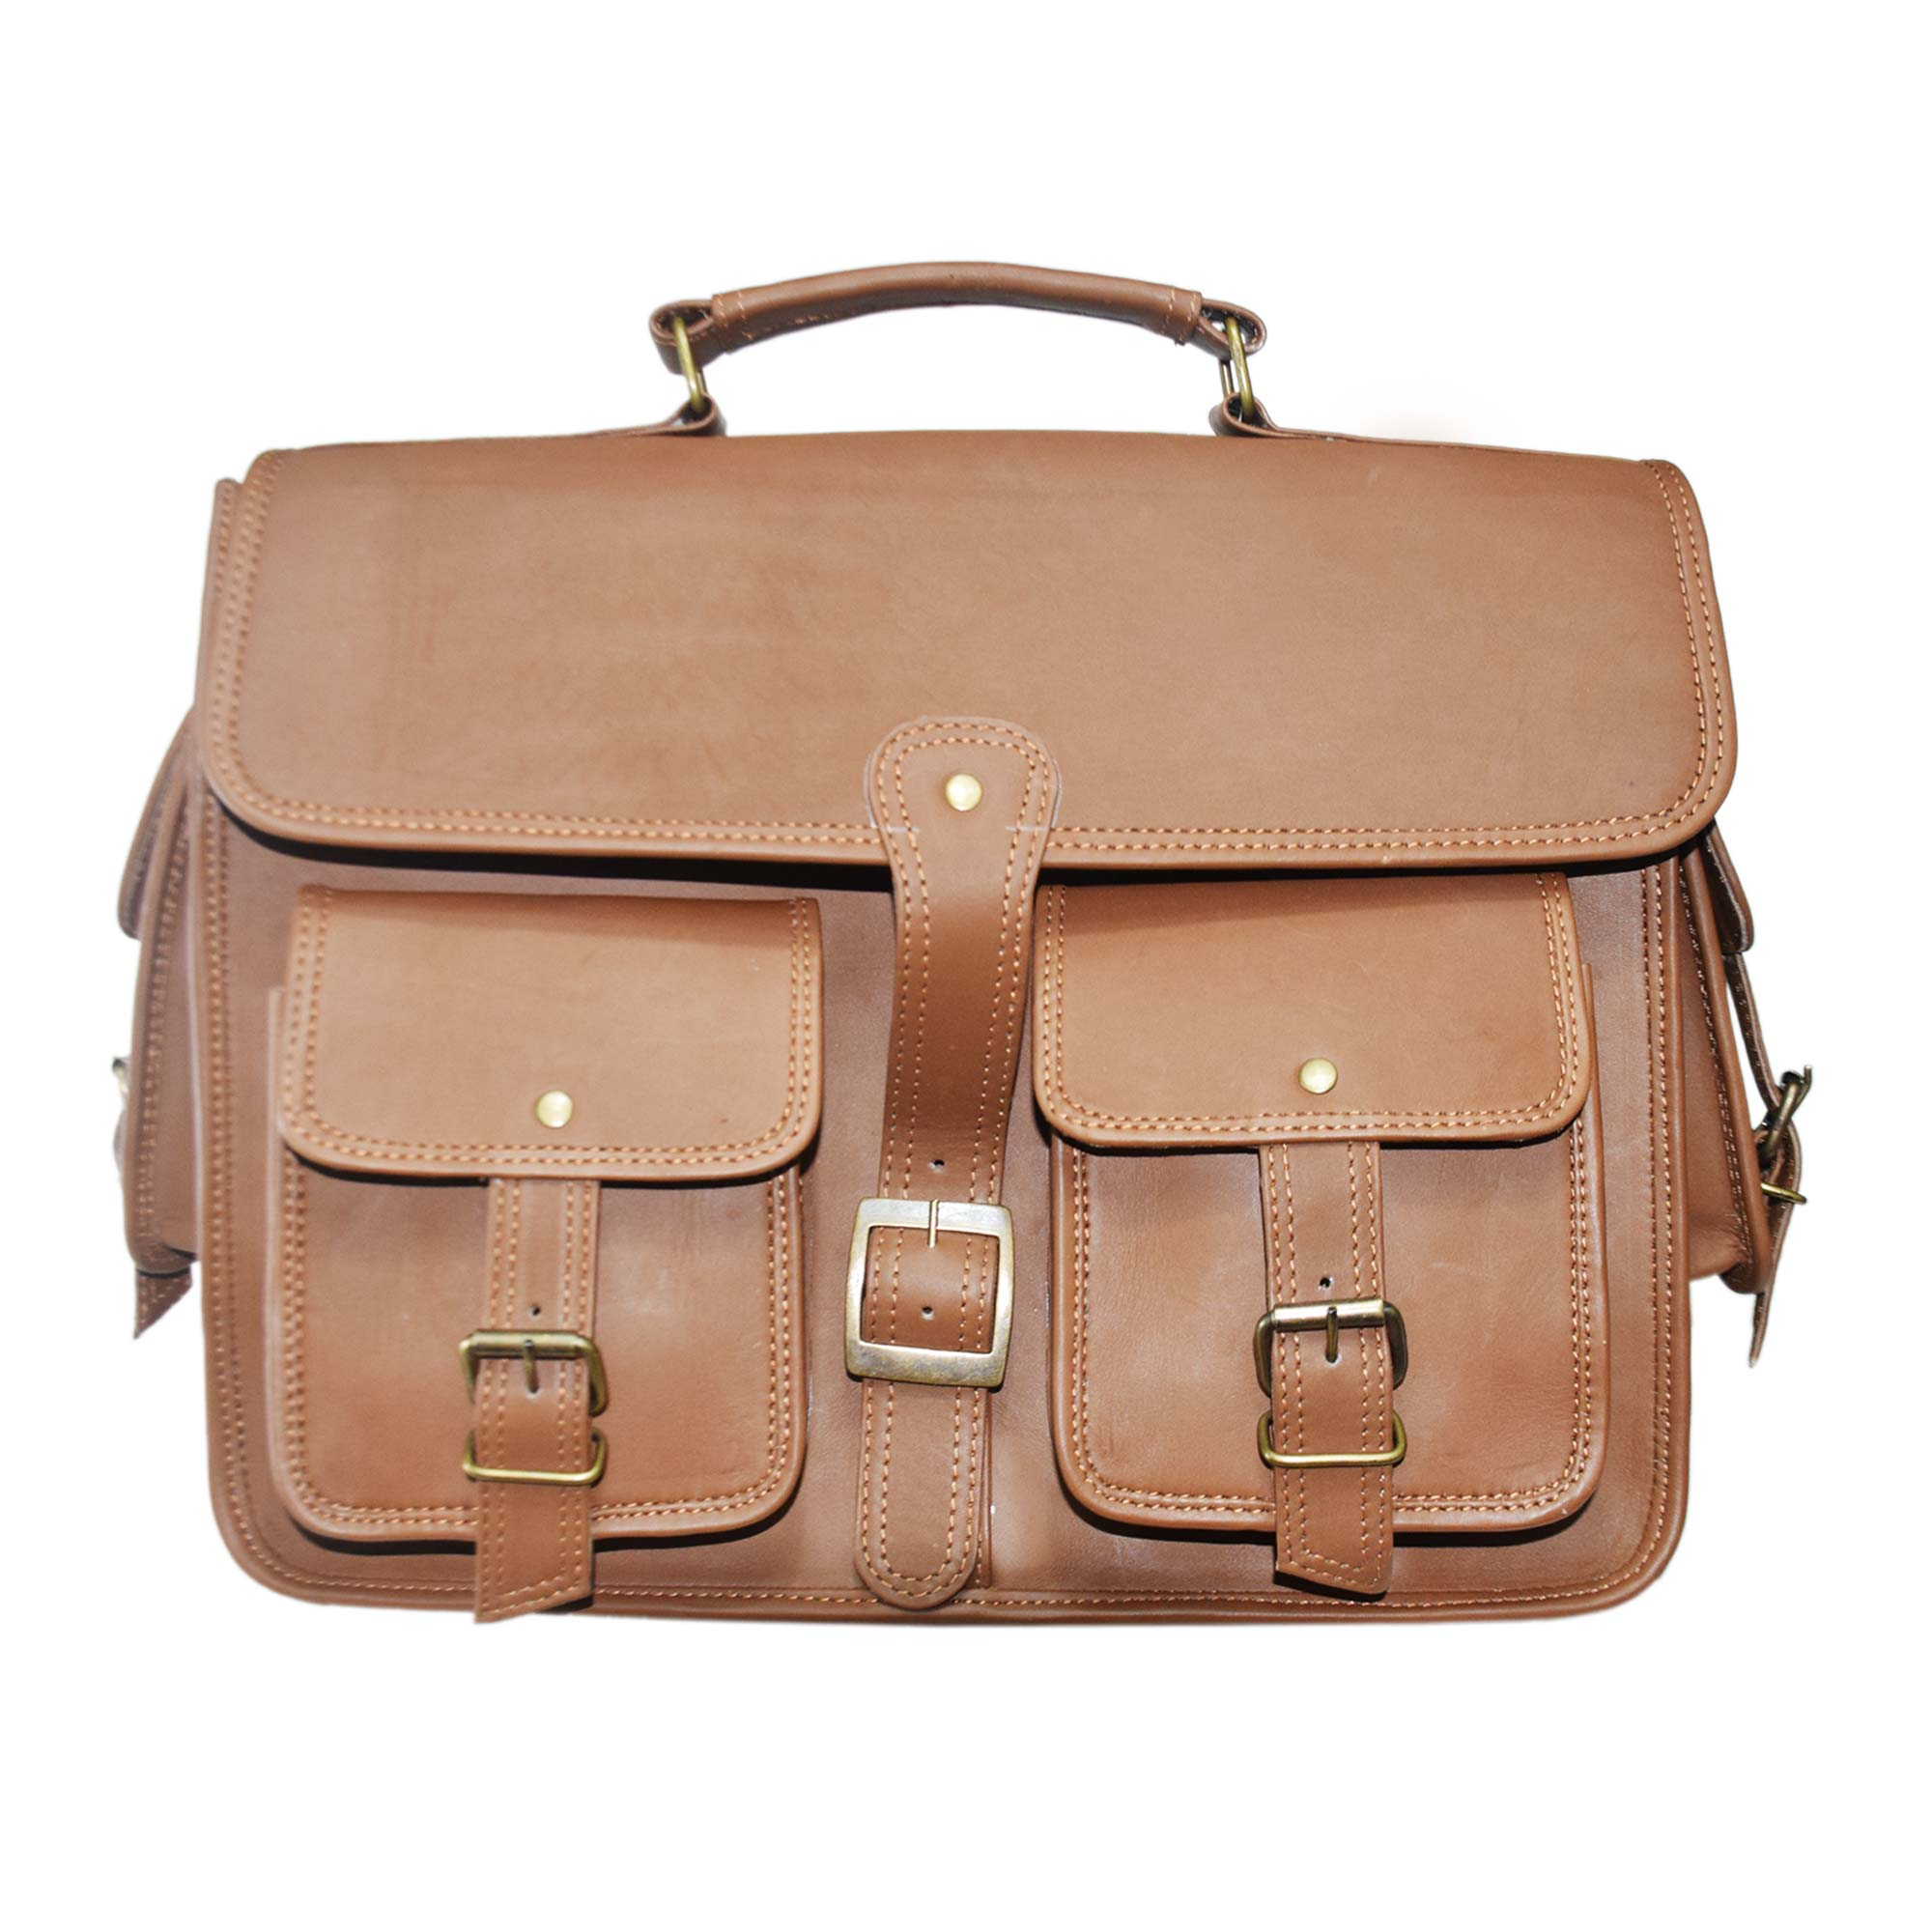 BROWN LAPTOP / MESSENGER BAG FOR 15